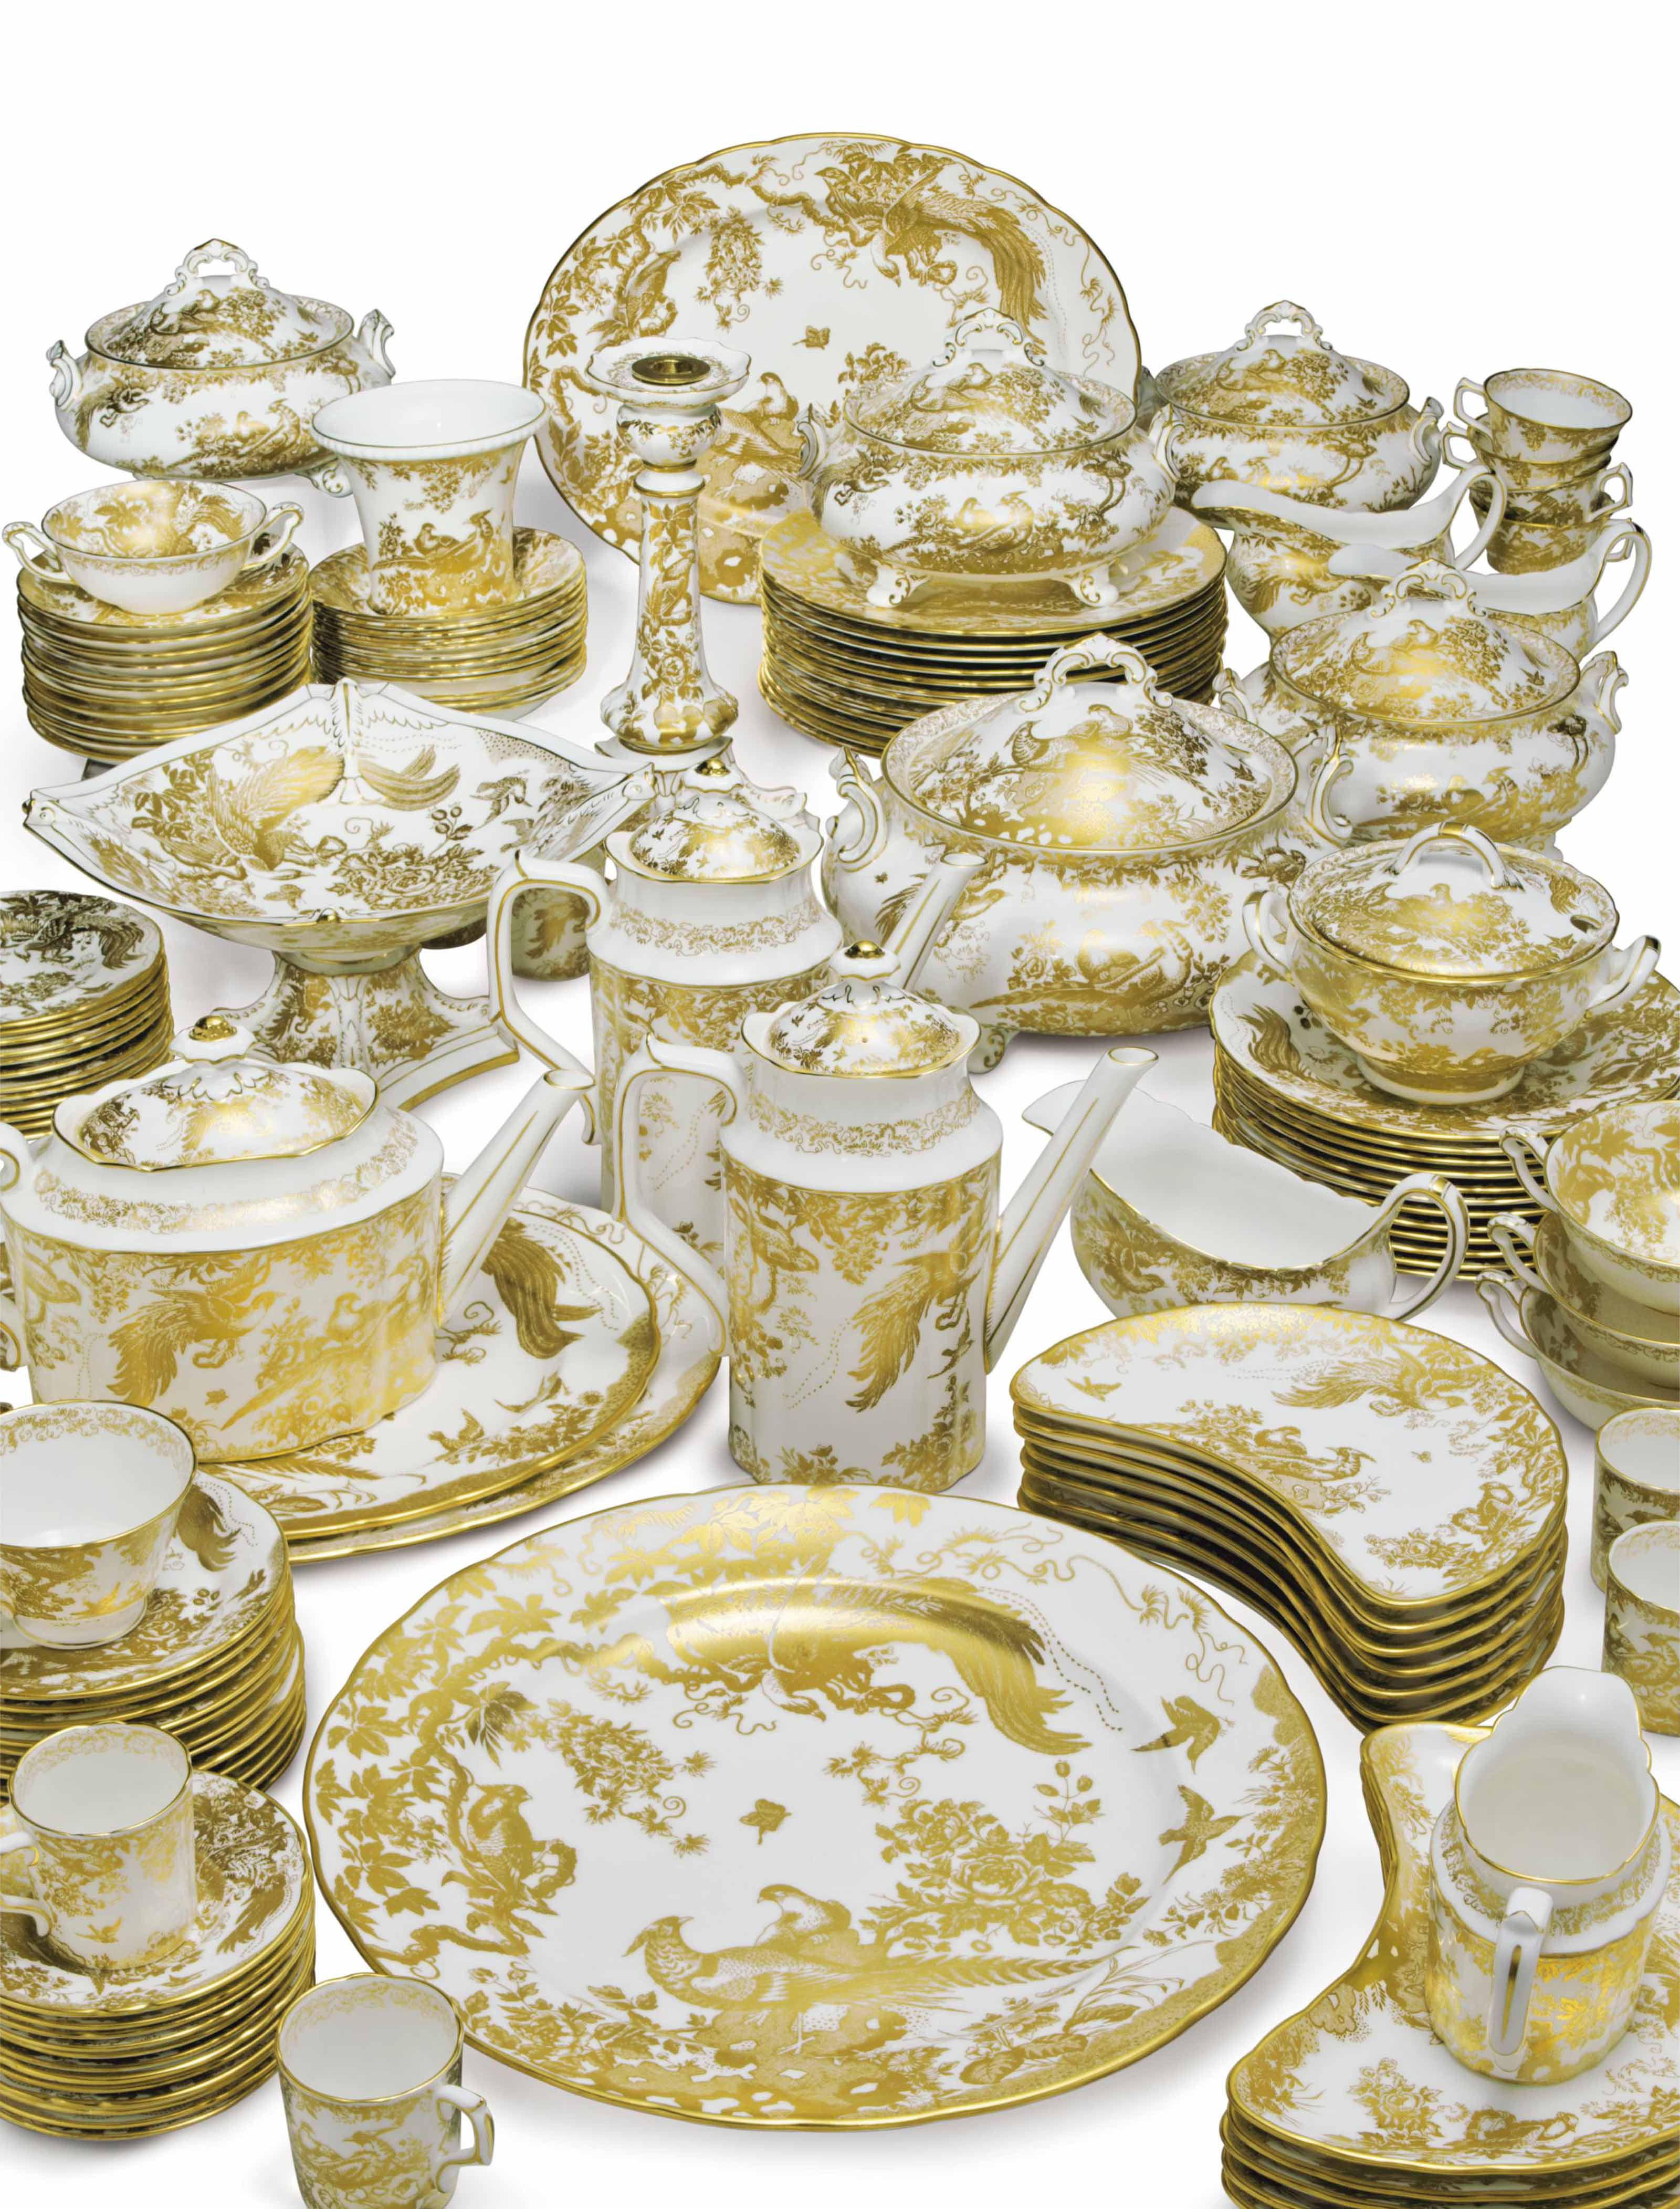 A ROYAL CROWN DERBY PORCELAIN PART DINNER AND DESSERT SERVICE IN THE 'GOLD AVES' PATTERN